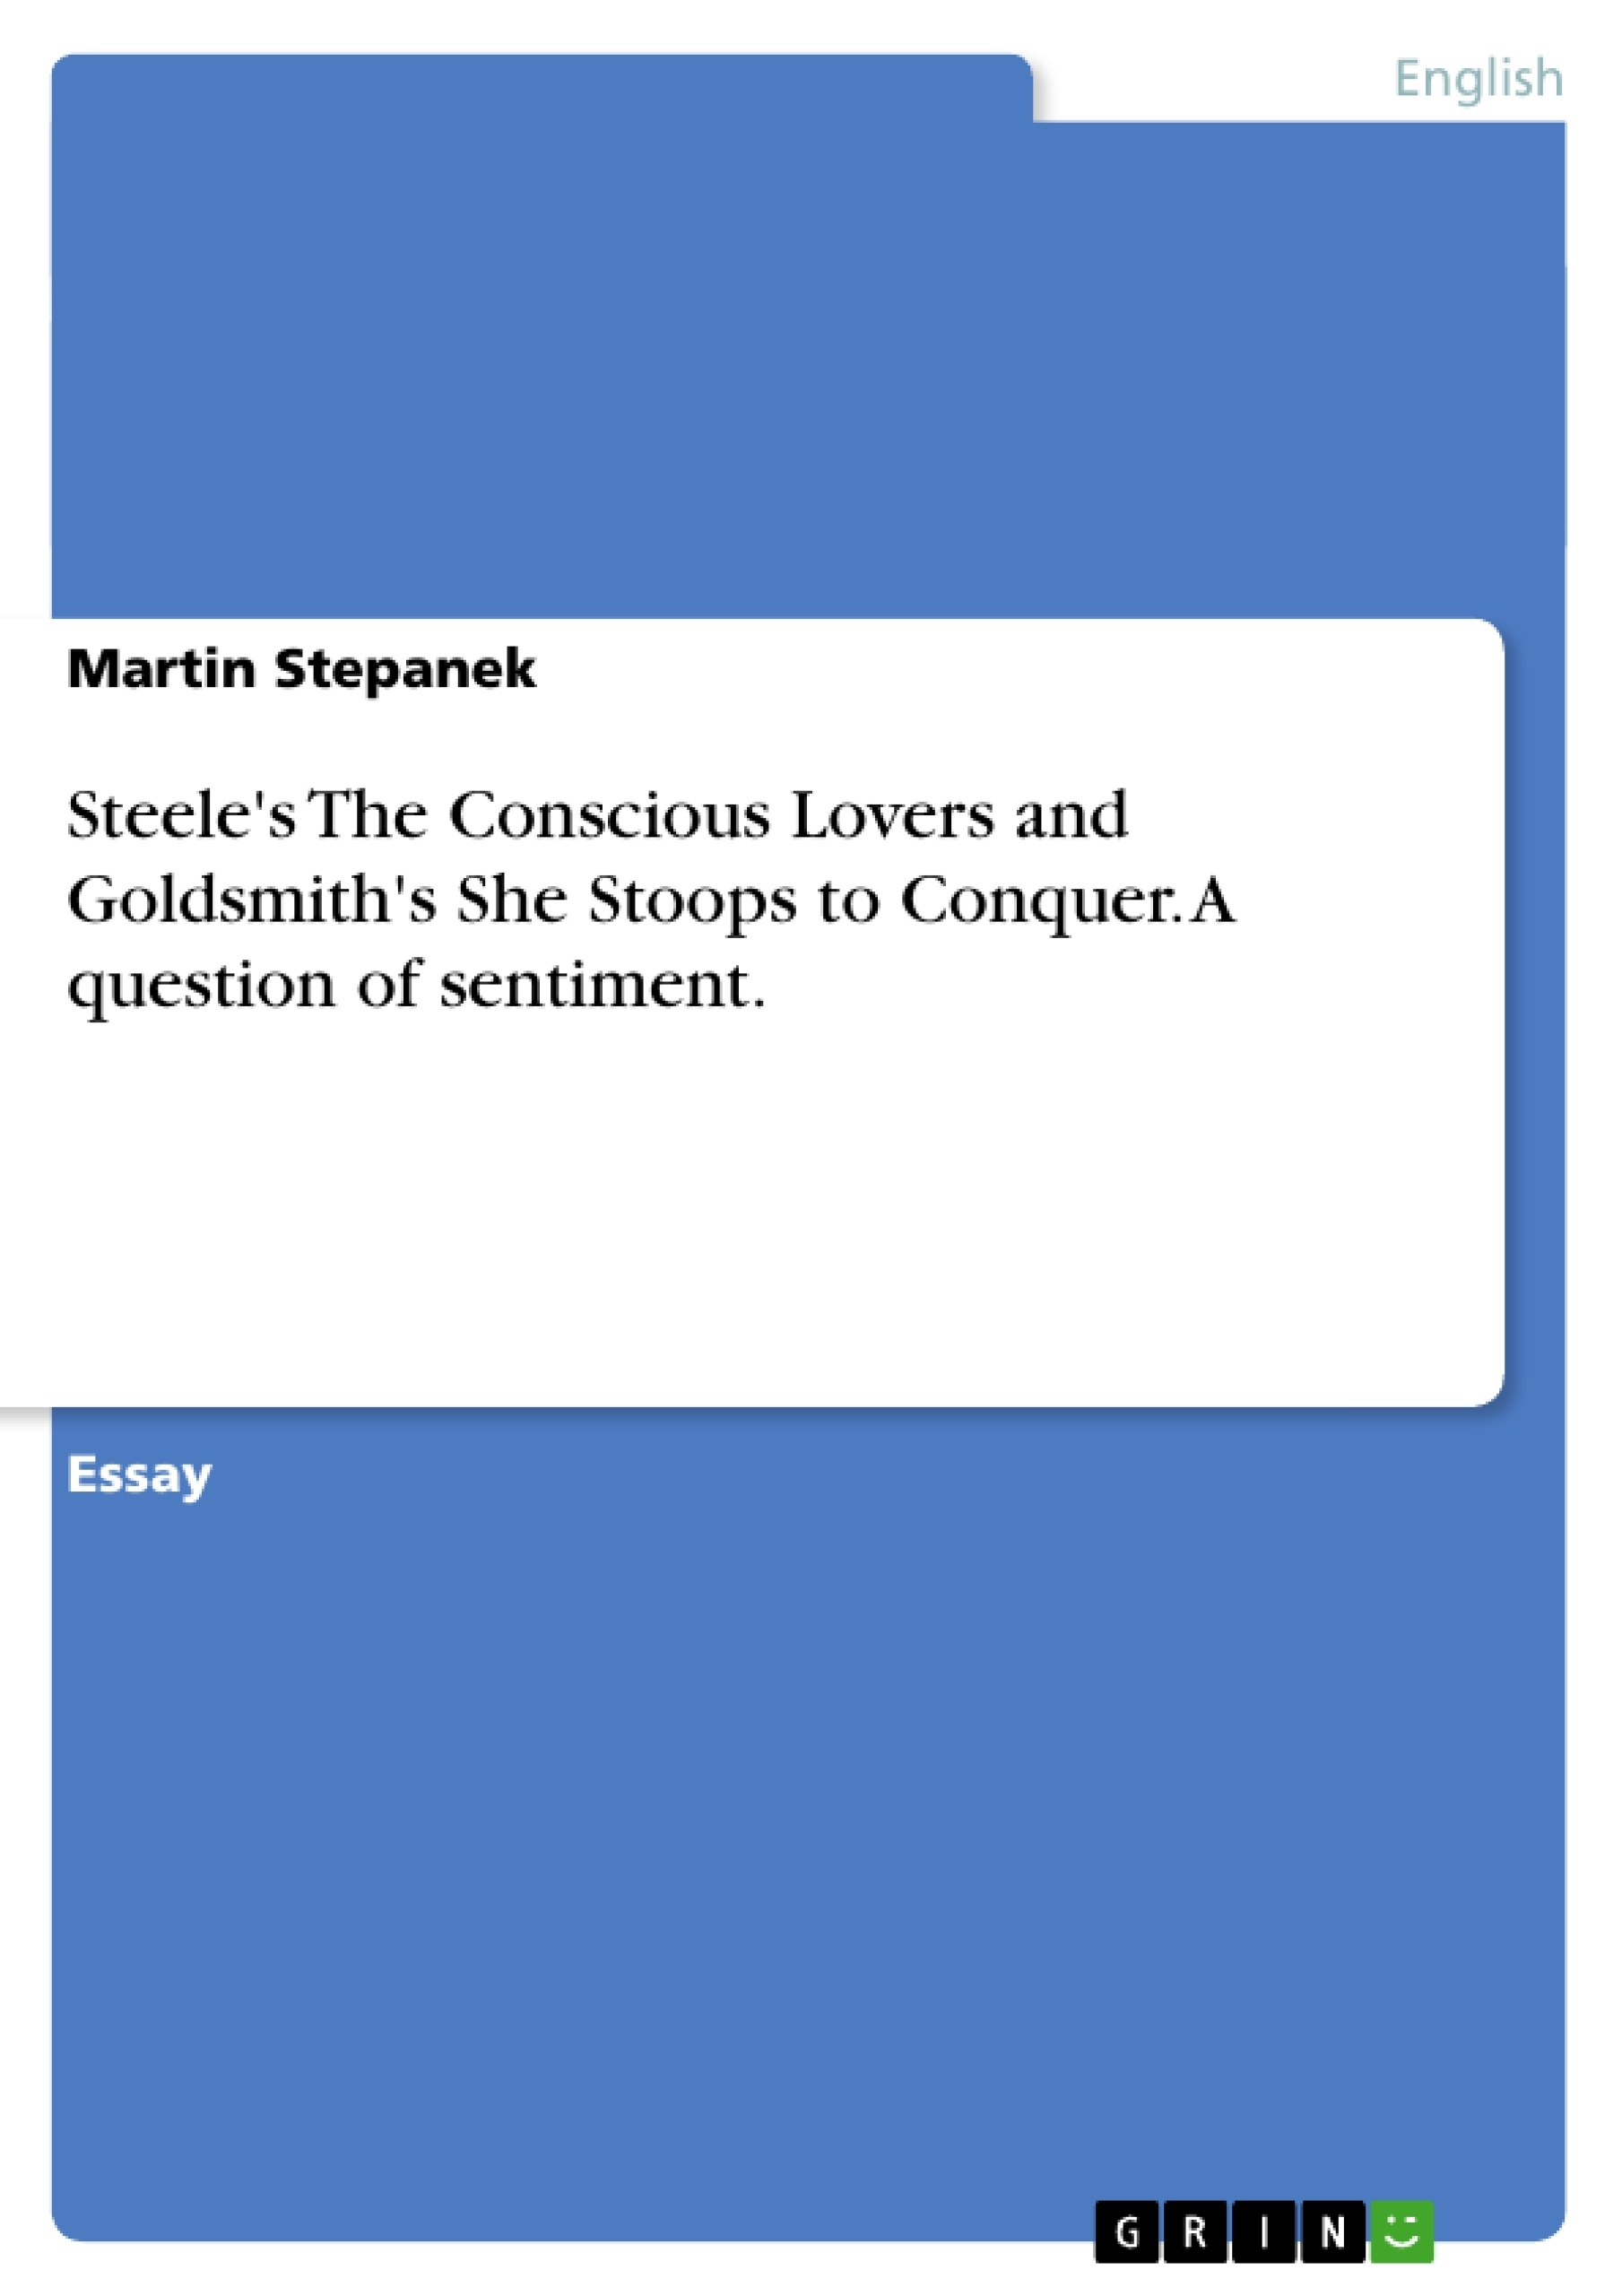 Title: Steele's The Conscious Lovers and Goldsmith's She Stoops to Conquer. A question of sentiment.